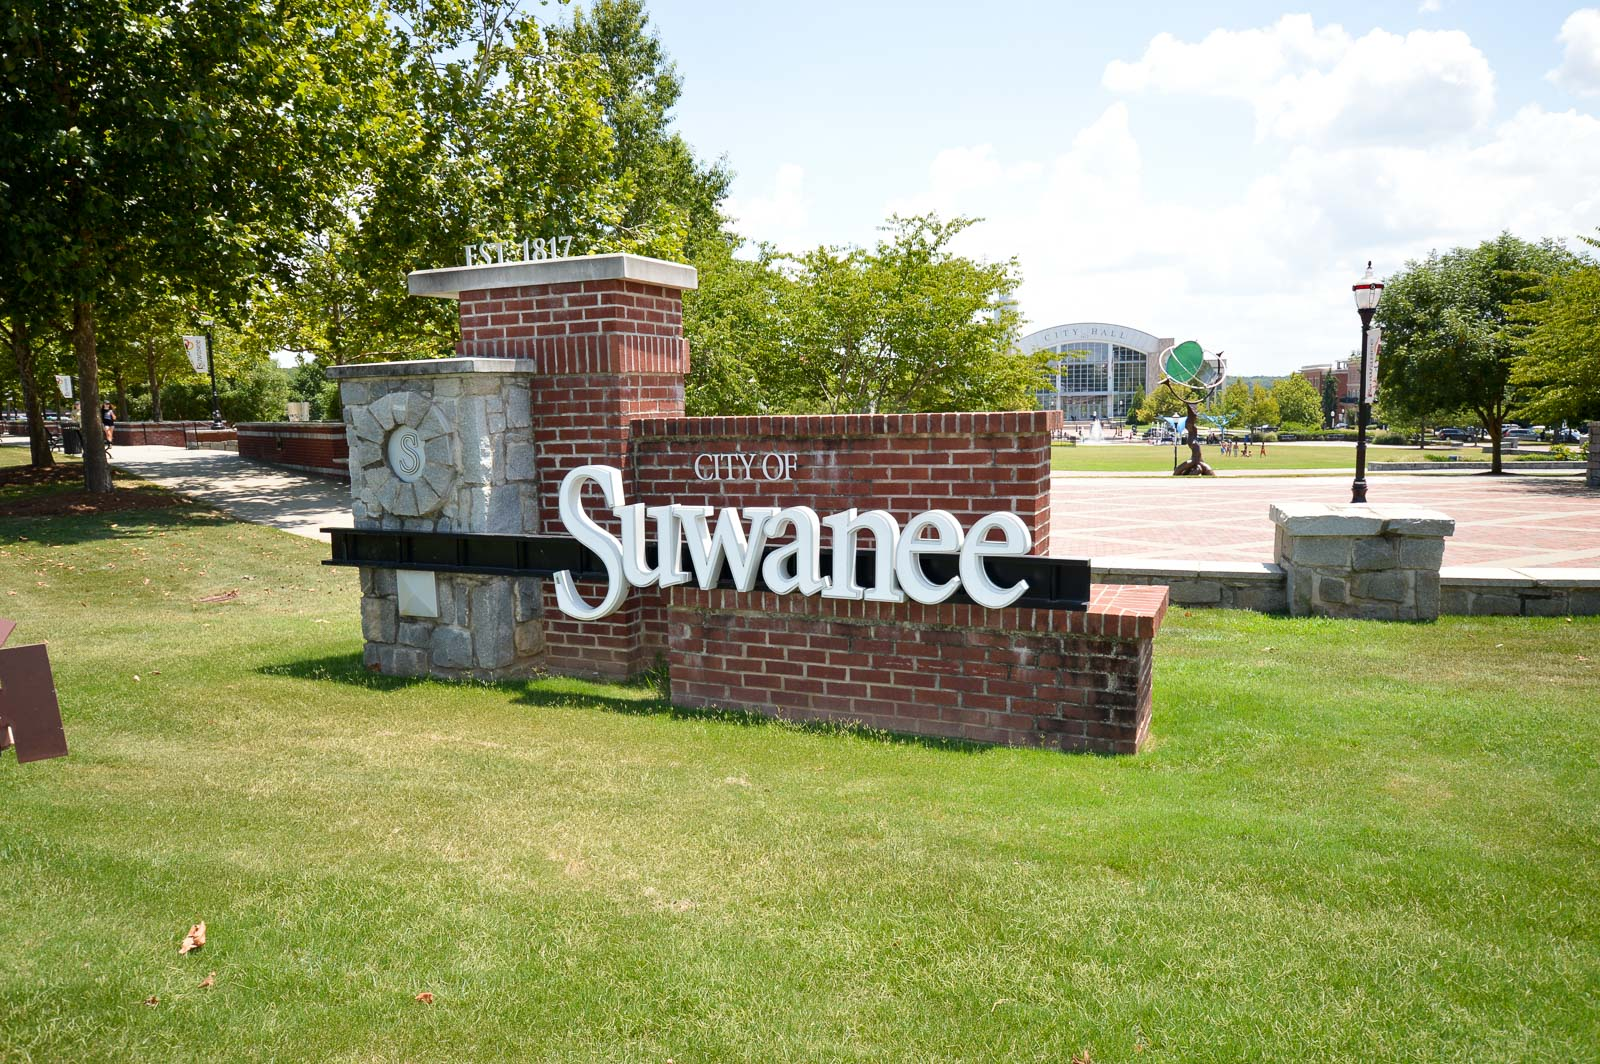 Suwanee Ga - Voted one of the best cities to raise a family